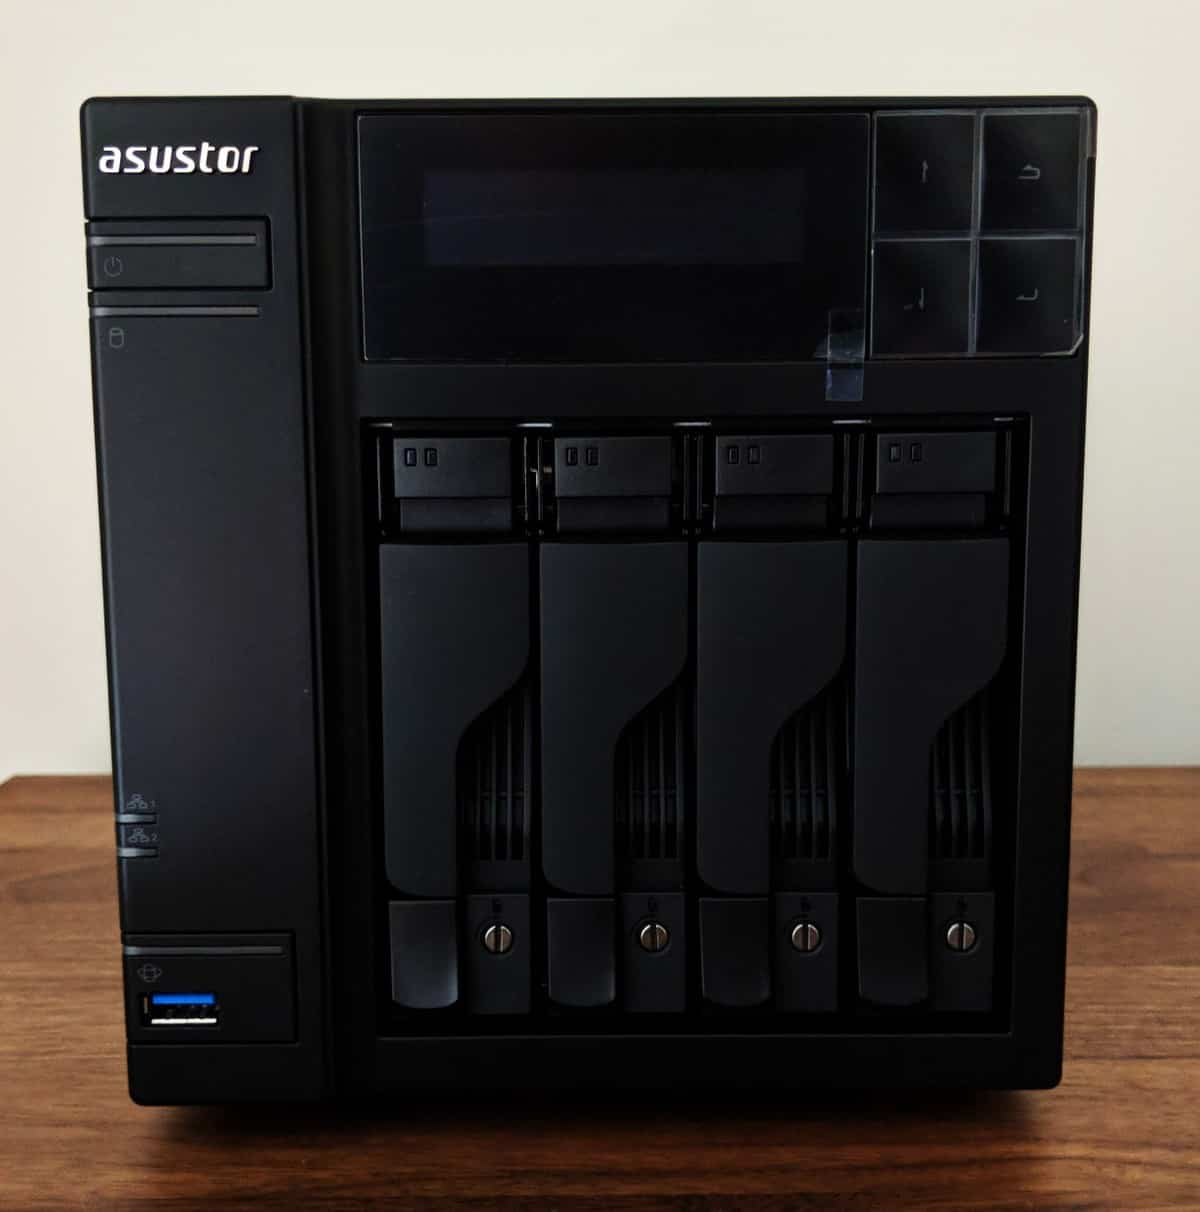 Asustor-NAS-Photos07 ASUSTOR AS6404T 4-BAY NAS Review